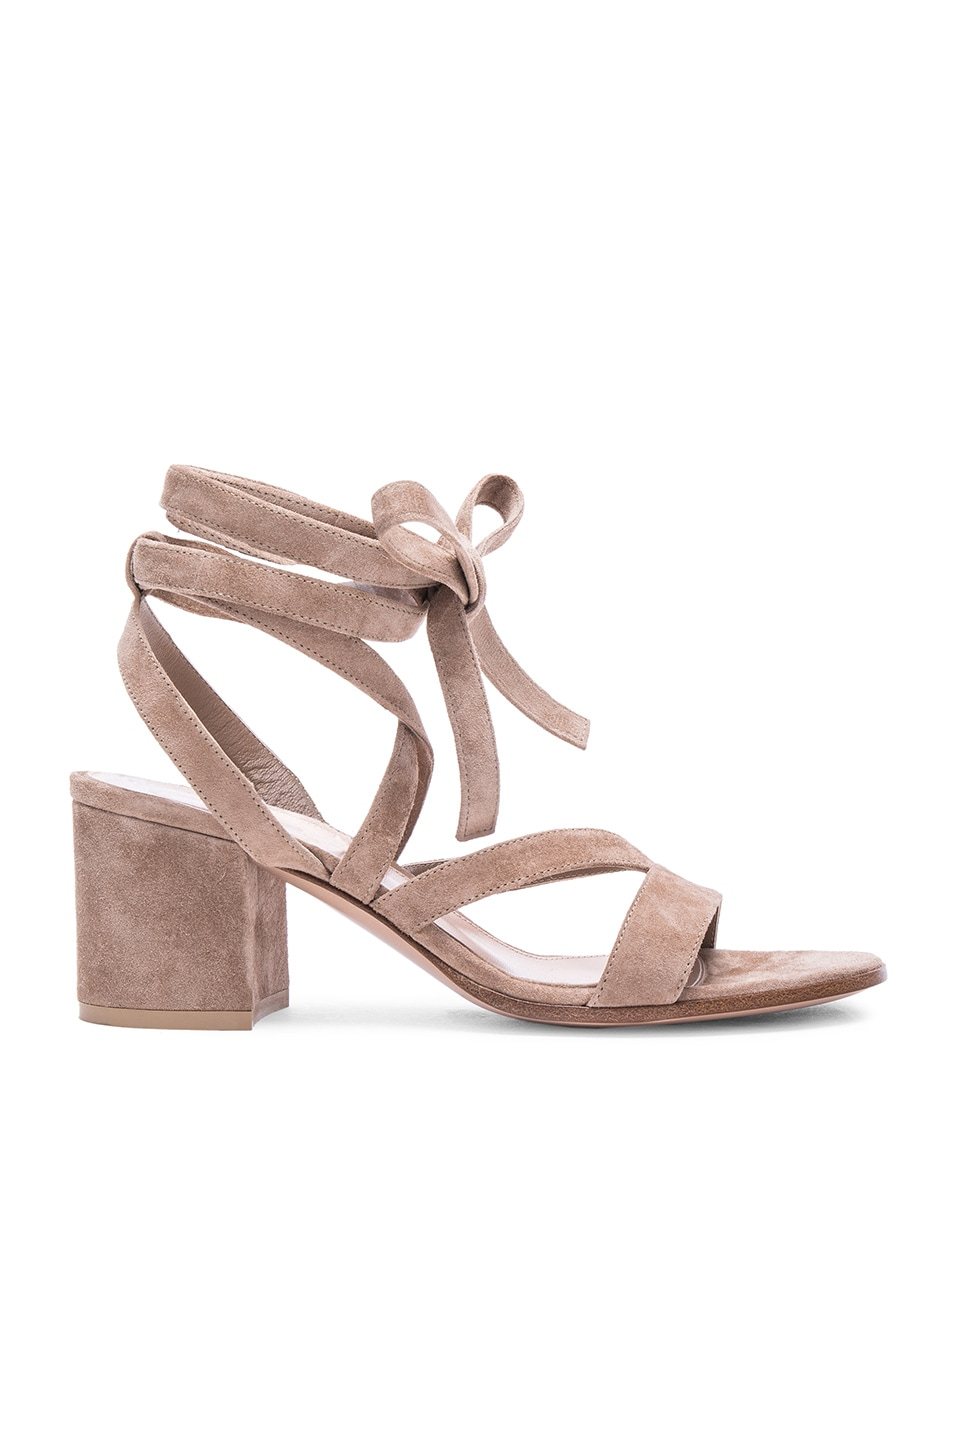 Image 1 of Gianvito Rossi Suede Janis Low Sandals in Bisque